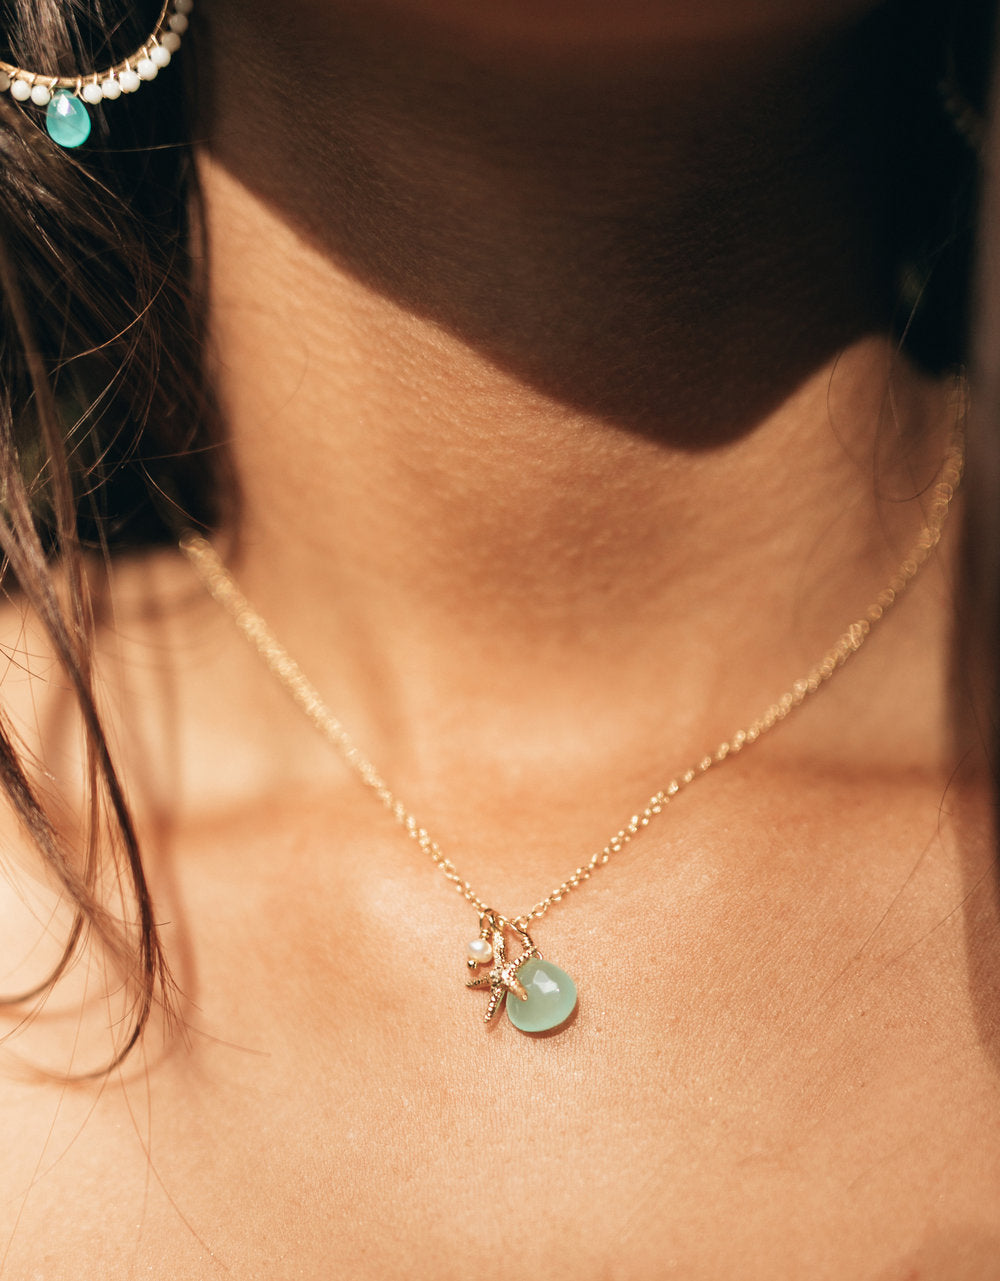 Multi-Seastar Charm necklace